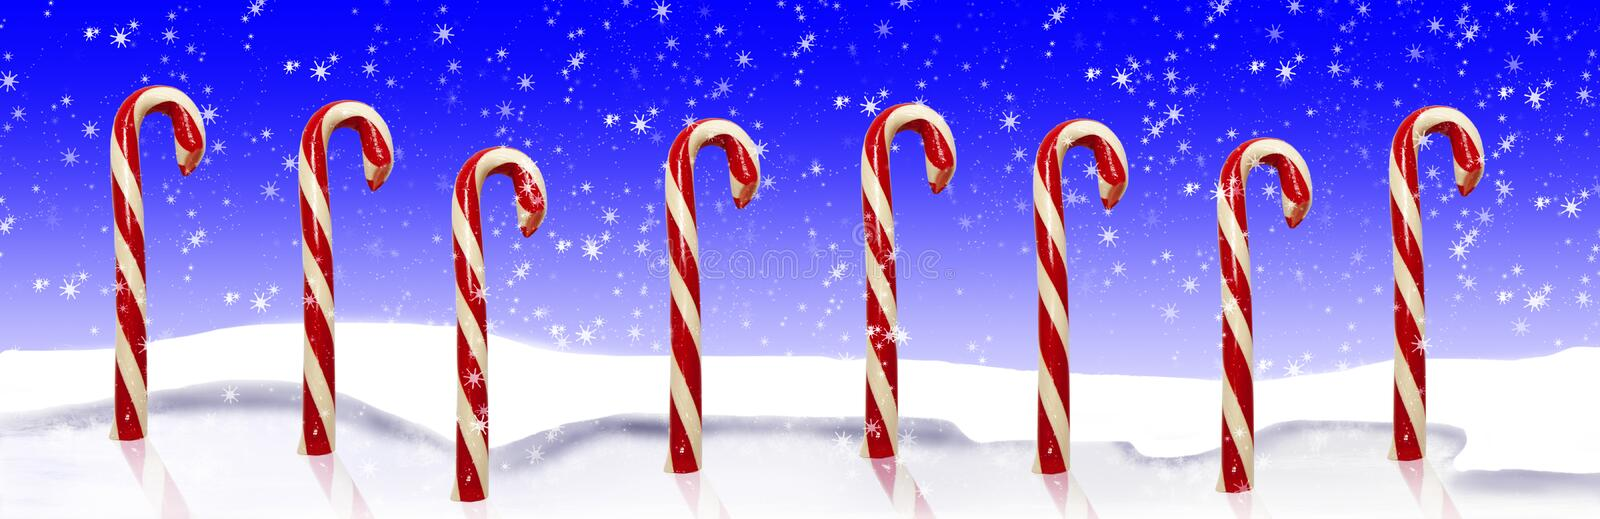 Candy Canes Snow stock photo